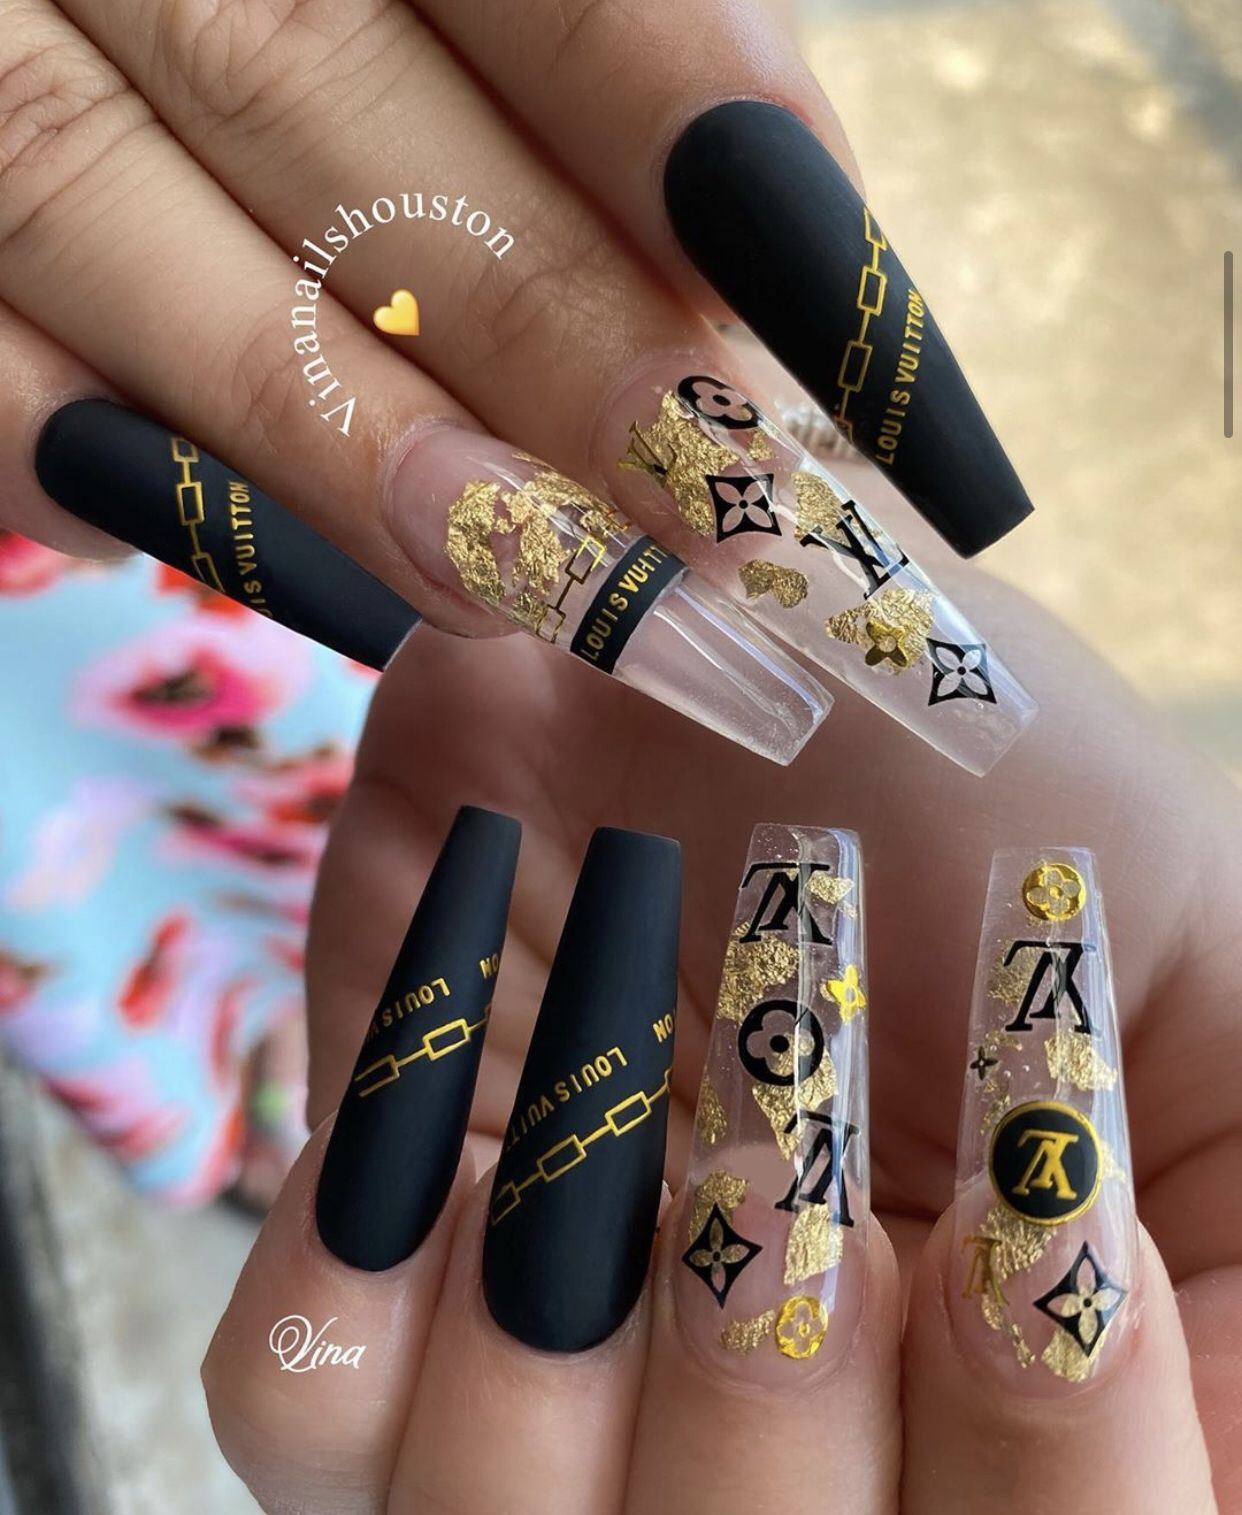 High Fashion Nails Lv Nails Acrylic Nail Designs Louis Vuitton Nails Nails In 2020 Cute Acrylic Nail Designs Acrylic Nail Designs Fashion Nails